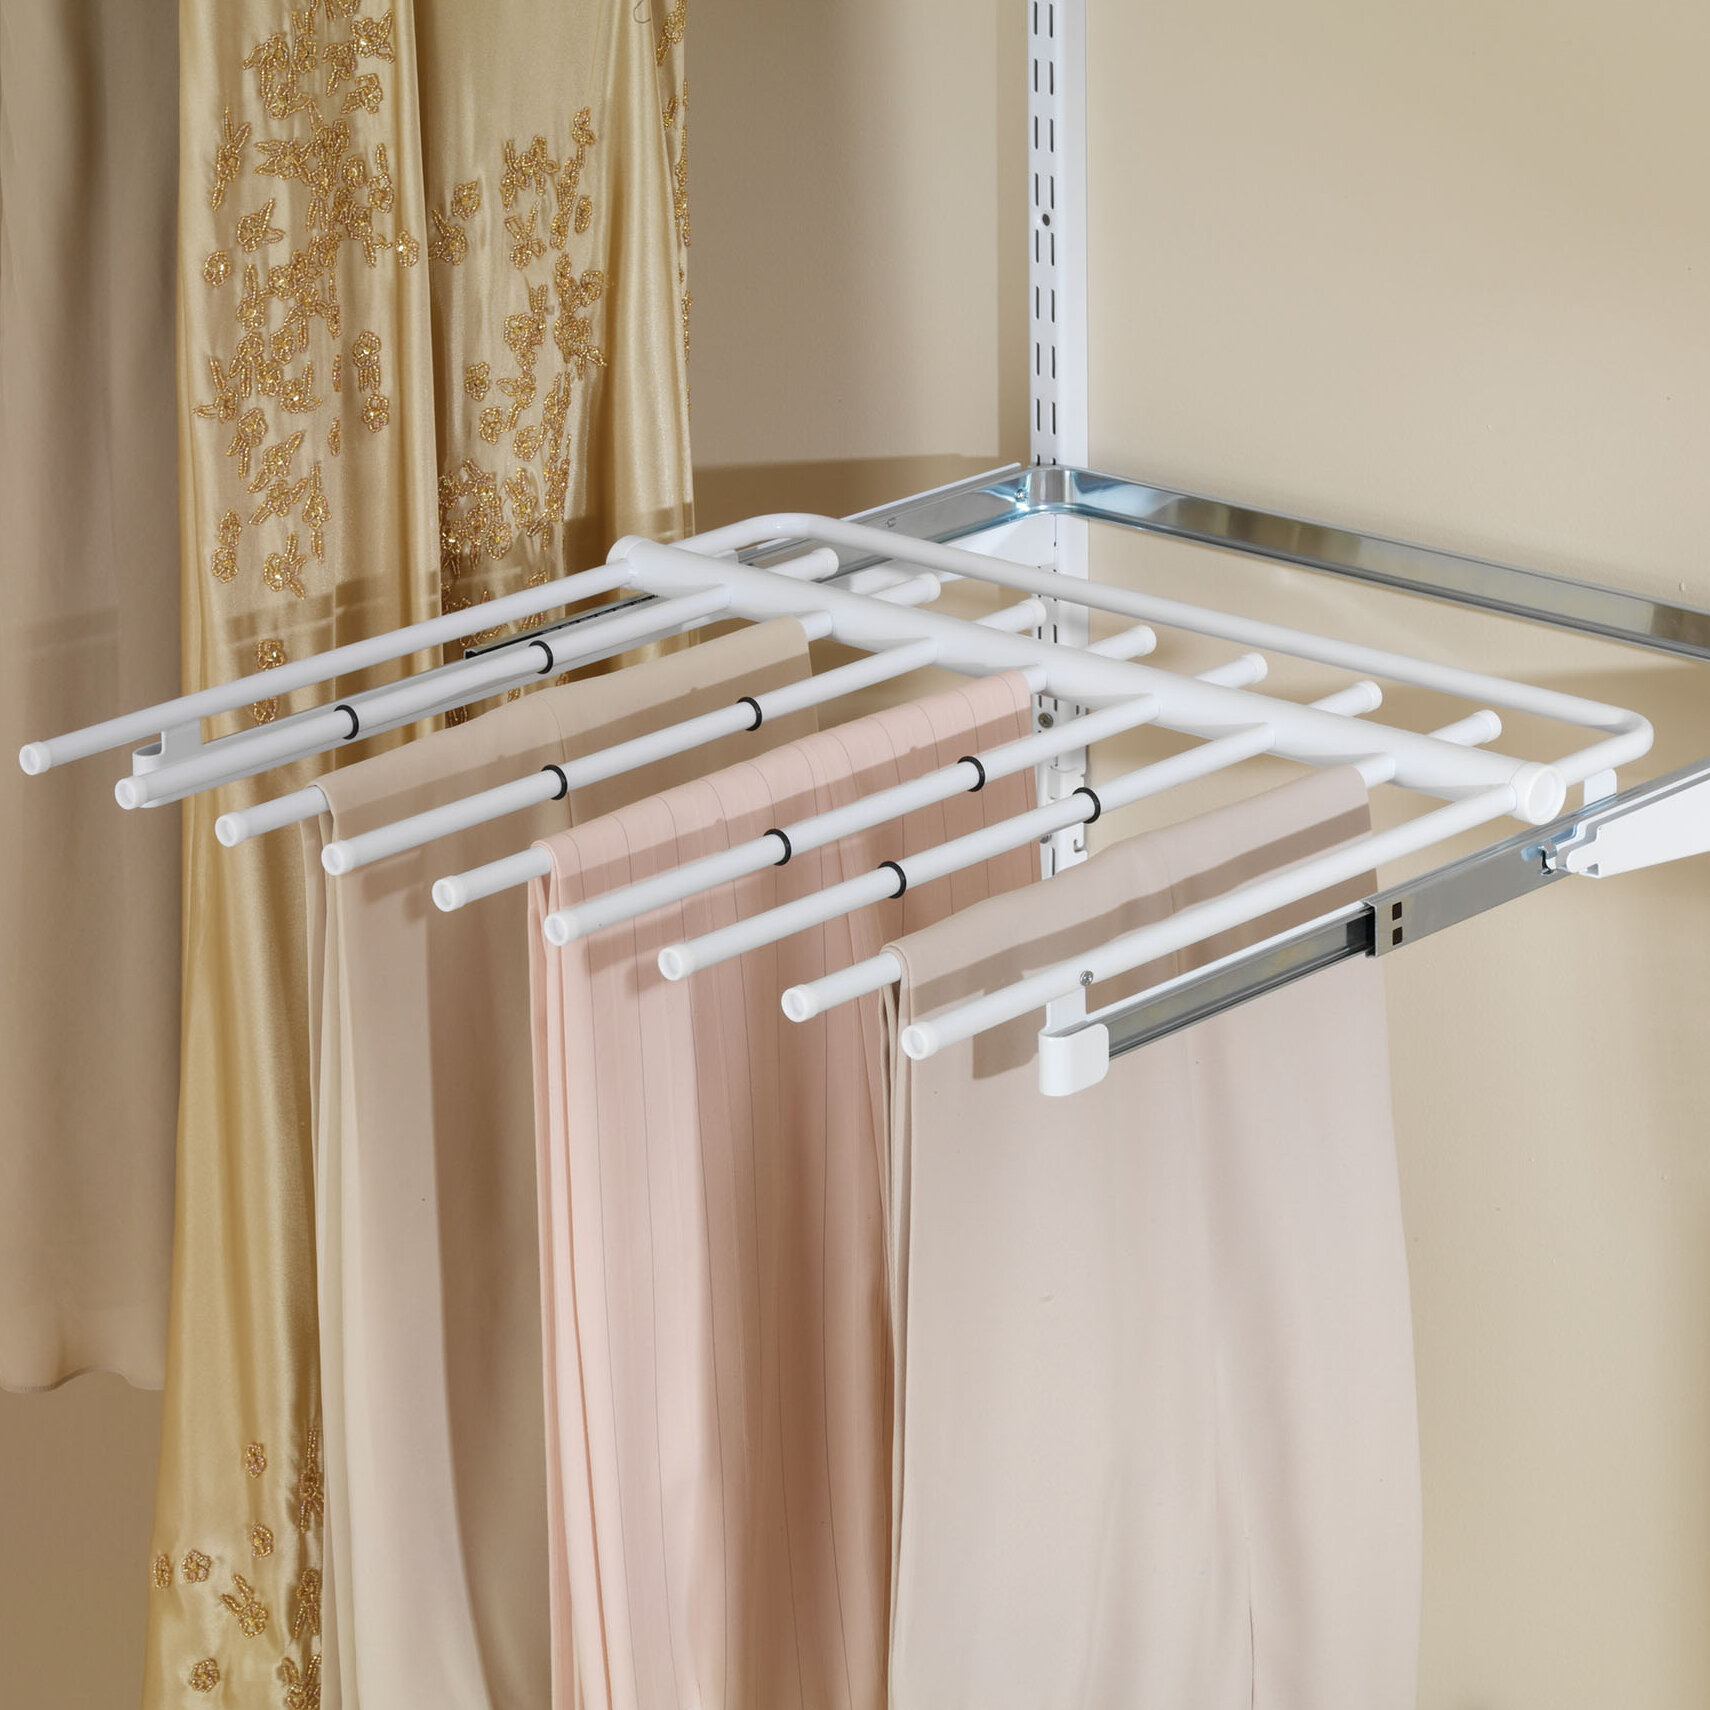 gallery organization marietta rack in custom images home pants pull out garage closet